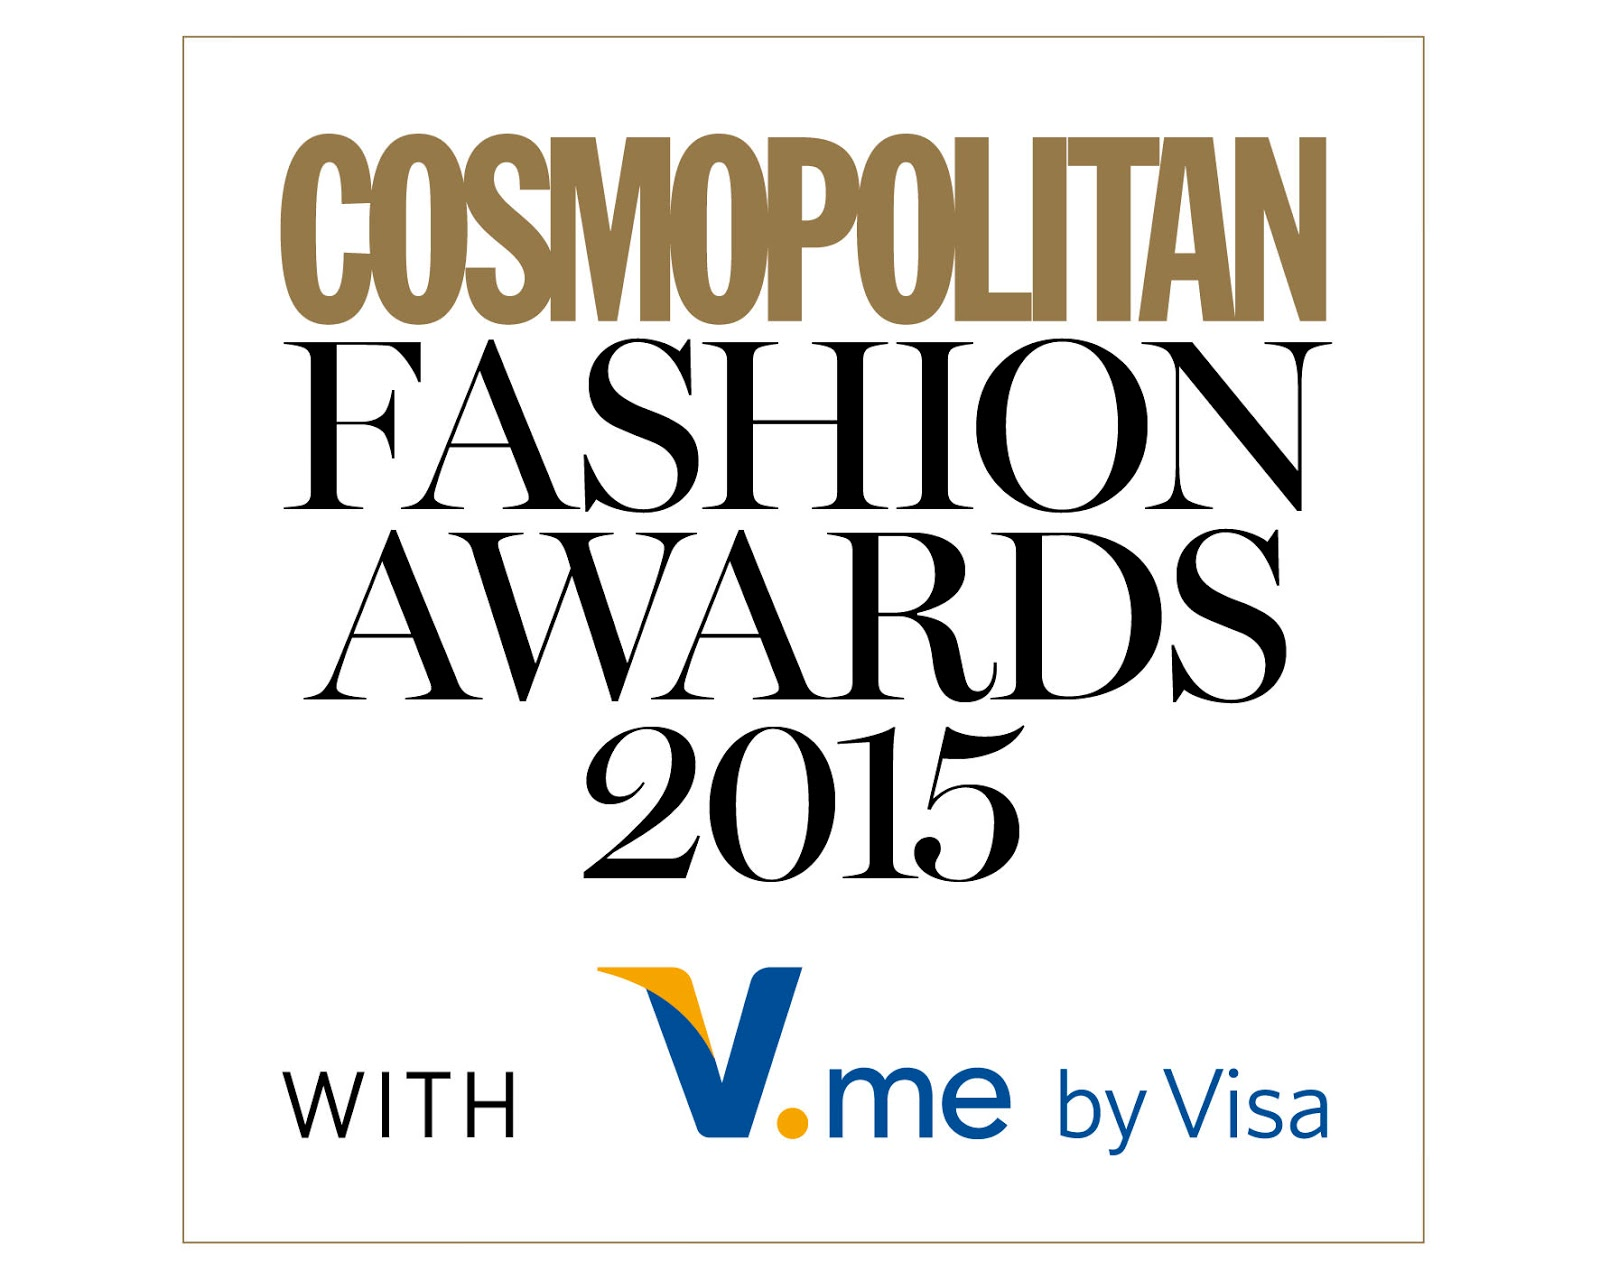 cosmopolitan fashion awards 2015